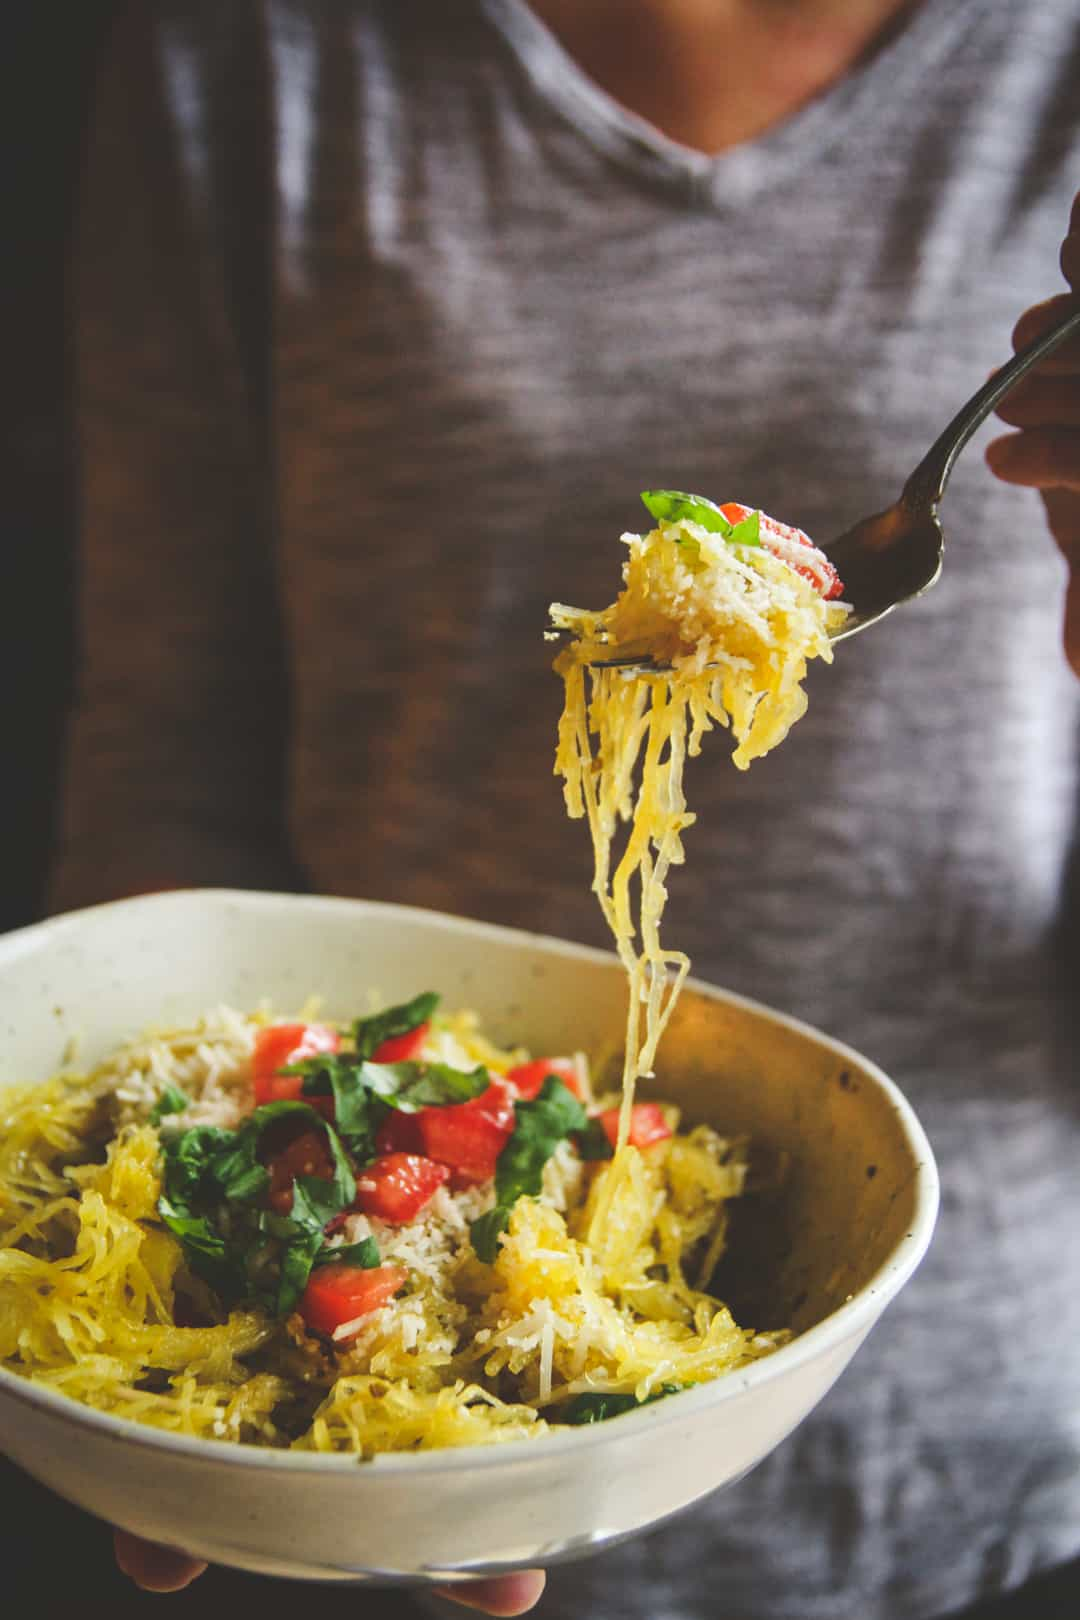 5 ingredient spaghetti squash pesto pasta recipe, a healthy alternative when you're craving pasta